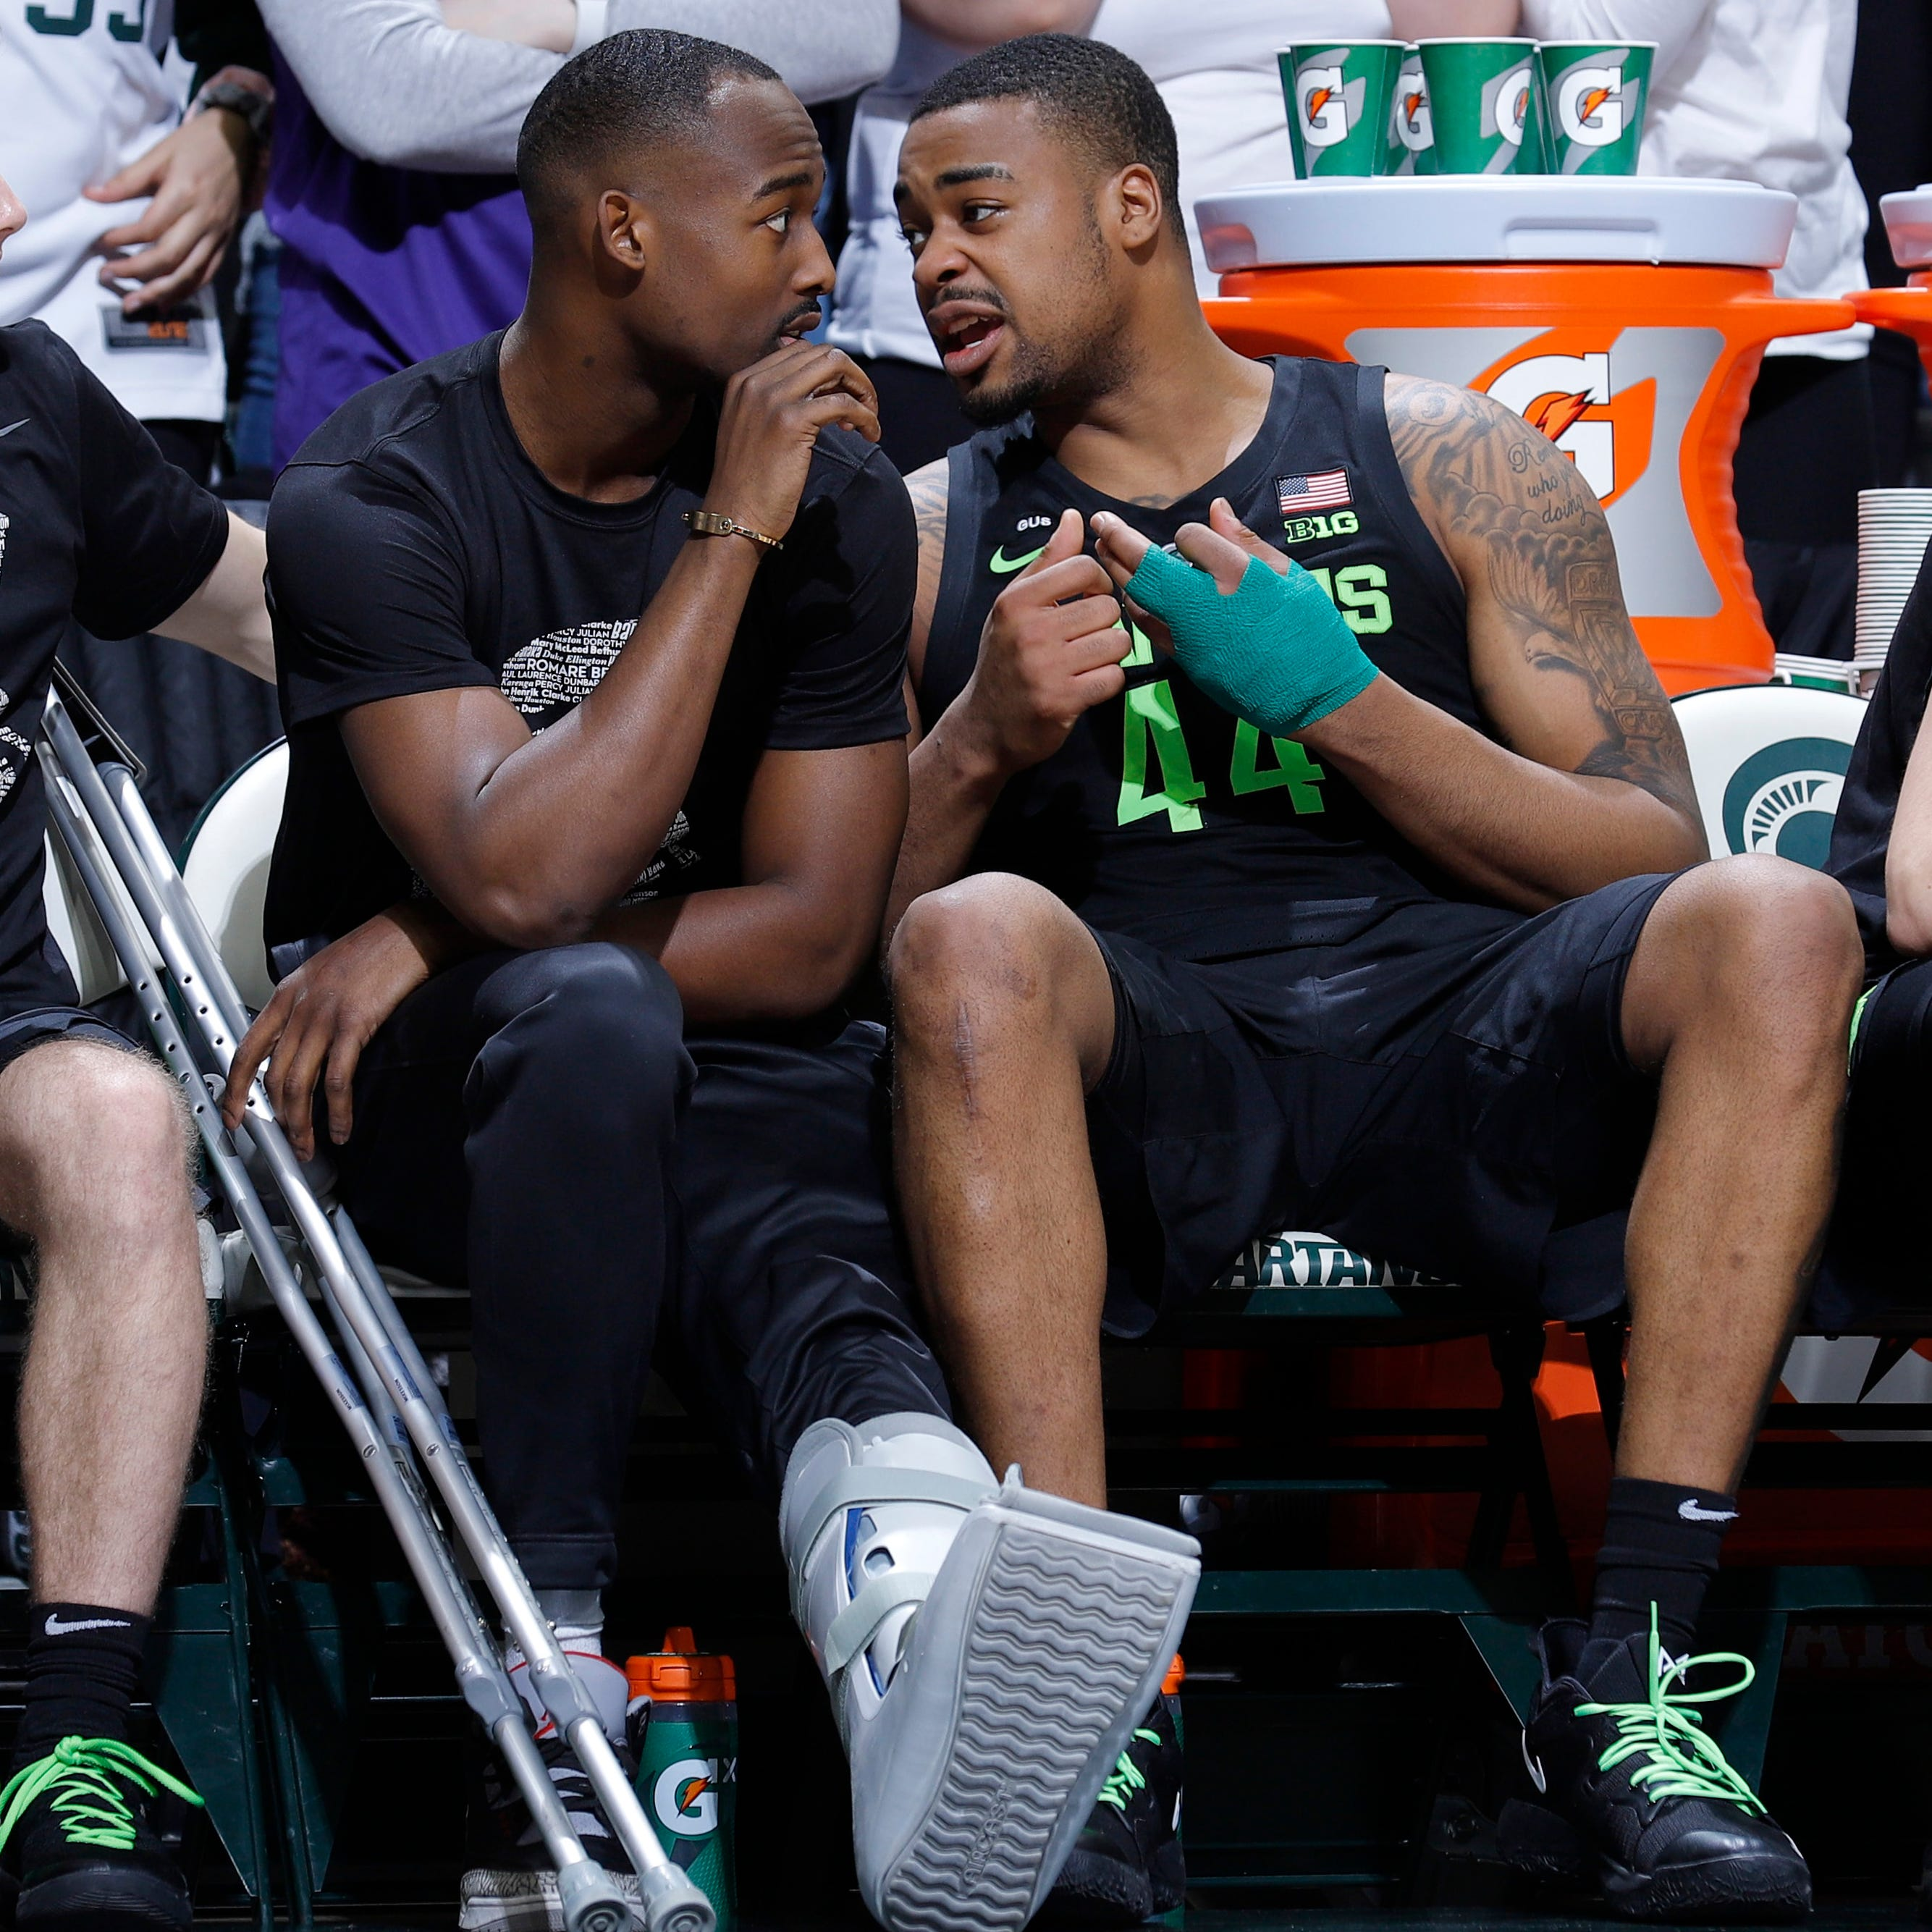 Michigan State's Nick Ward has surgery on hand; no timetable to return